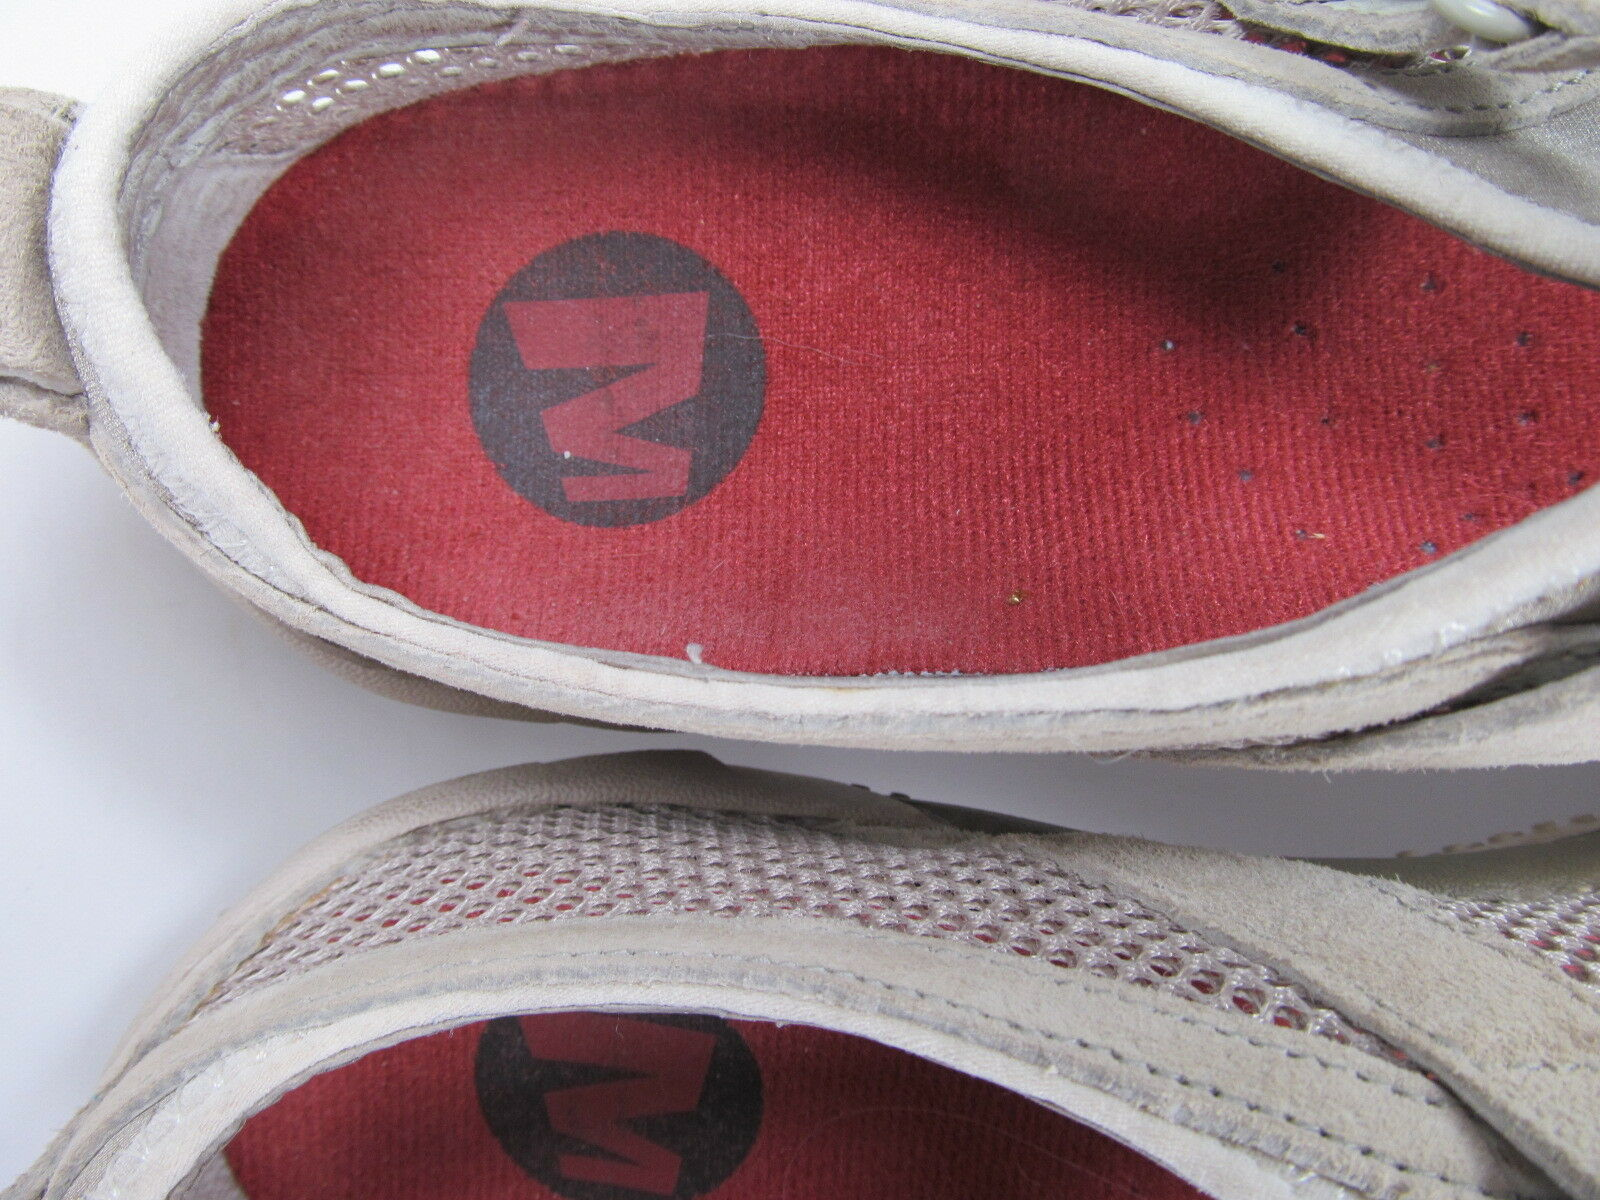 Merrell Taupe Womens Mesh Shoes Size 7.5 M Grey Suede Mary Jane Shoes image 7